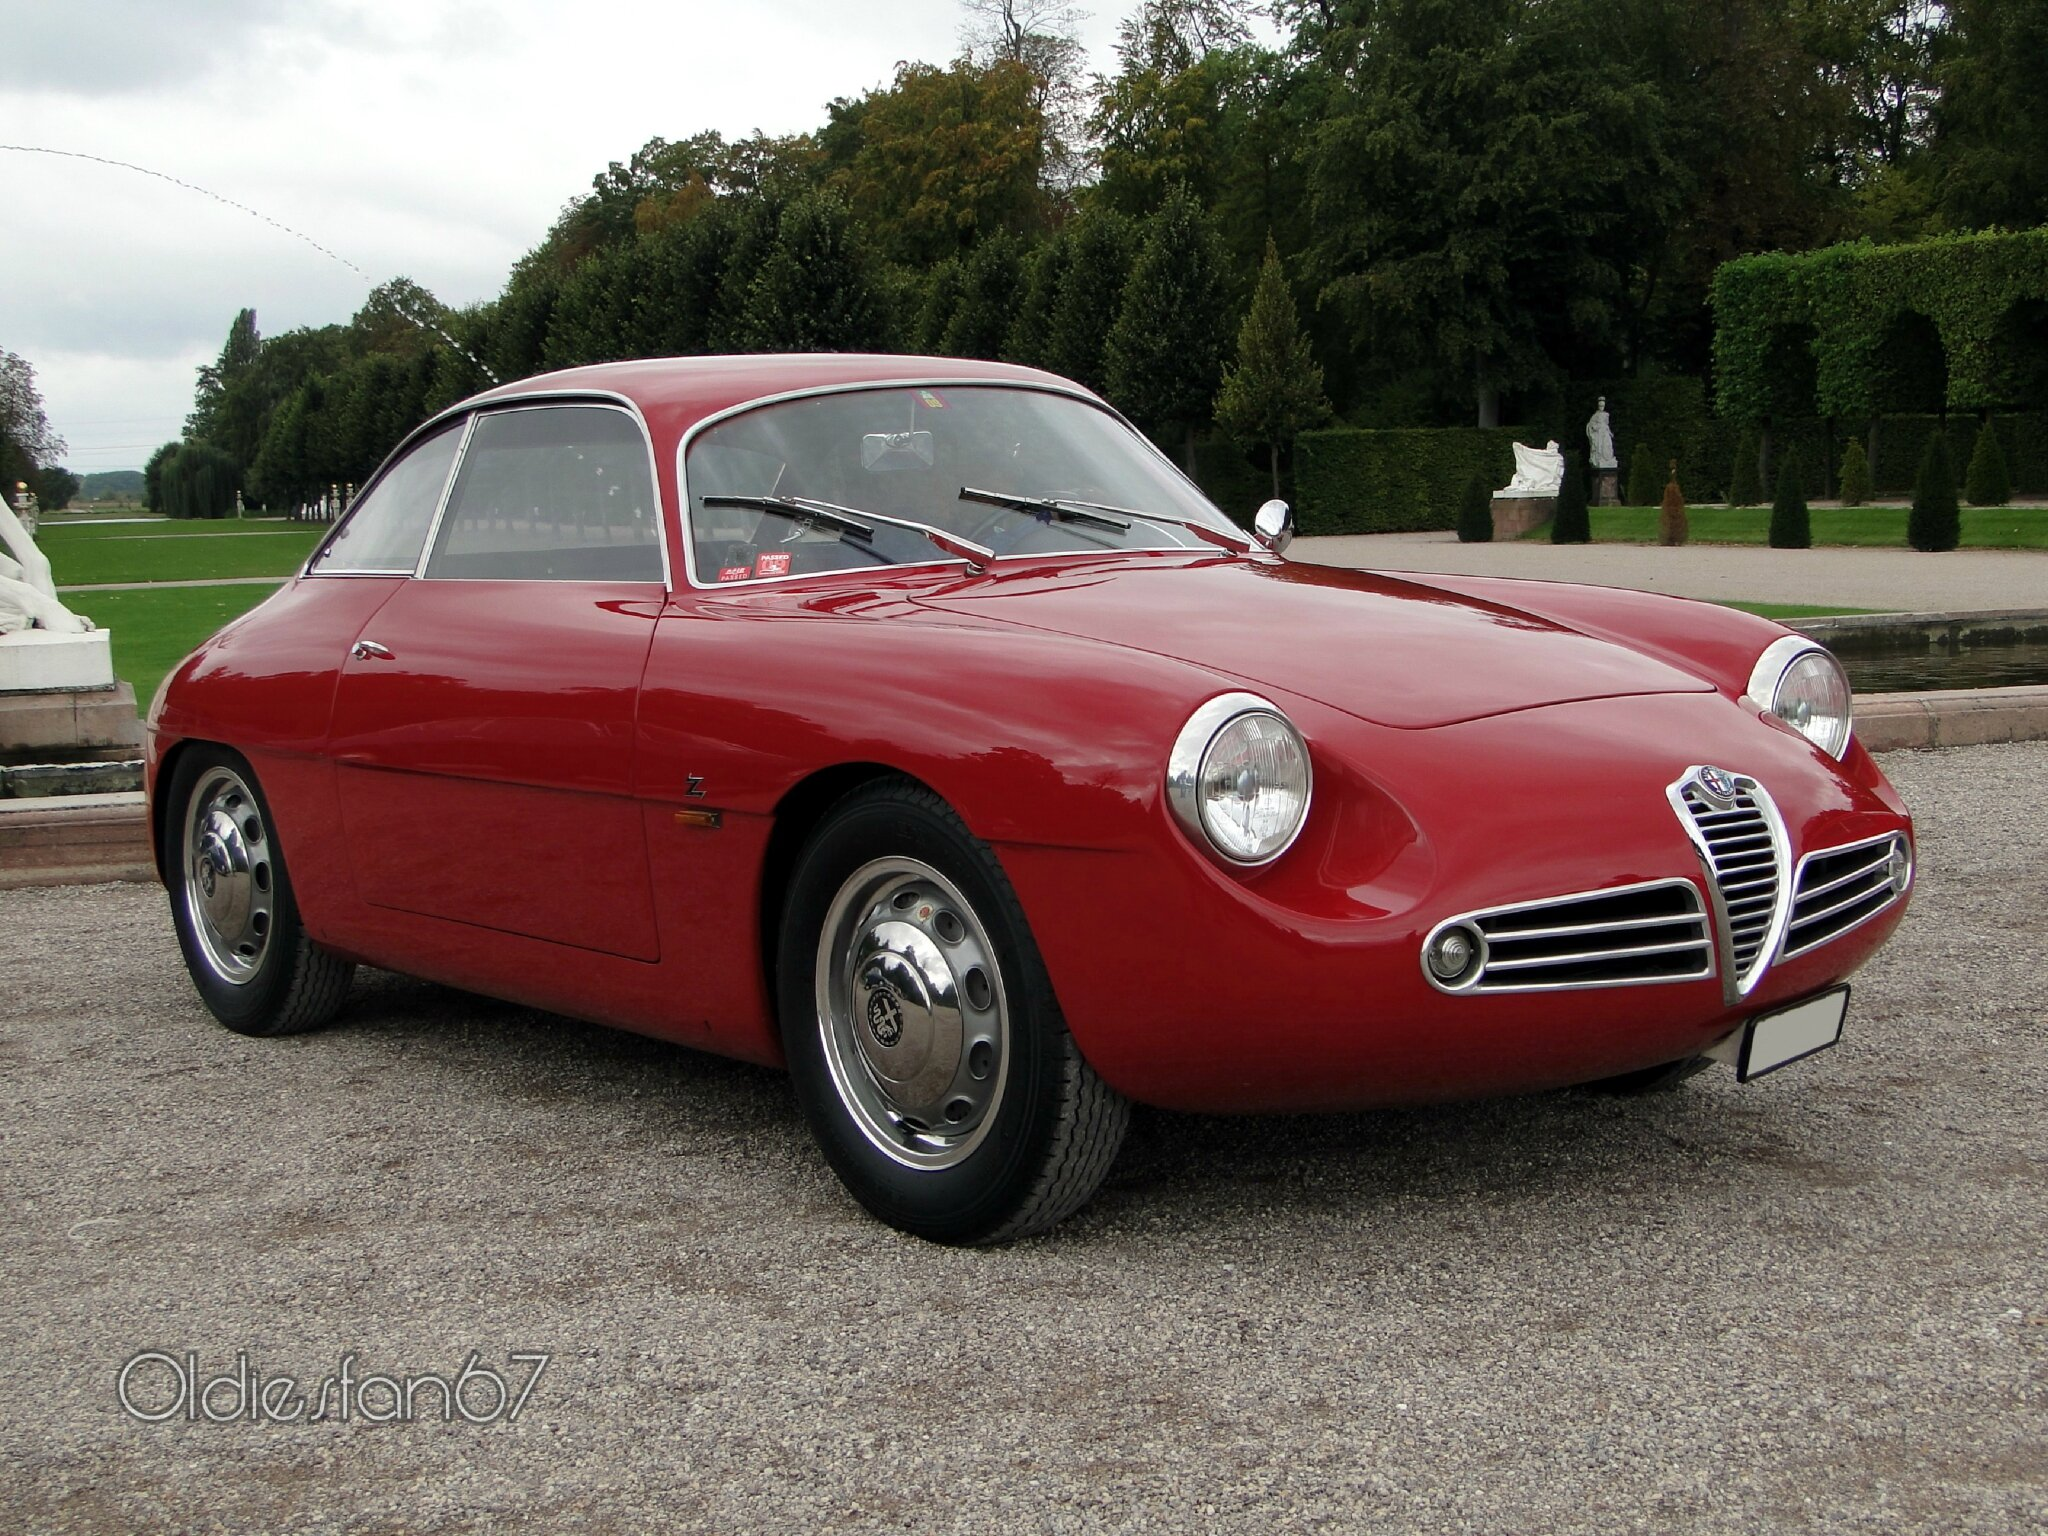 alfa romeo giulietta sz sprint coupe zagato 1961 oldiesfan67 mon blog auto. Black Bedroom Furniture Sets. Home Design Ideas